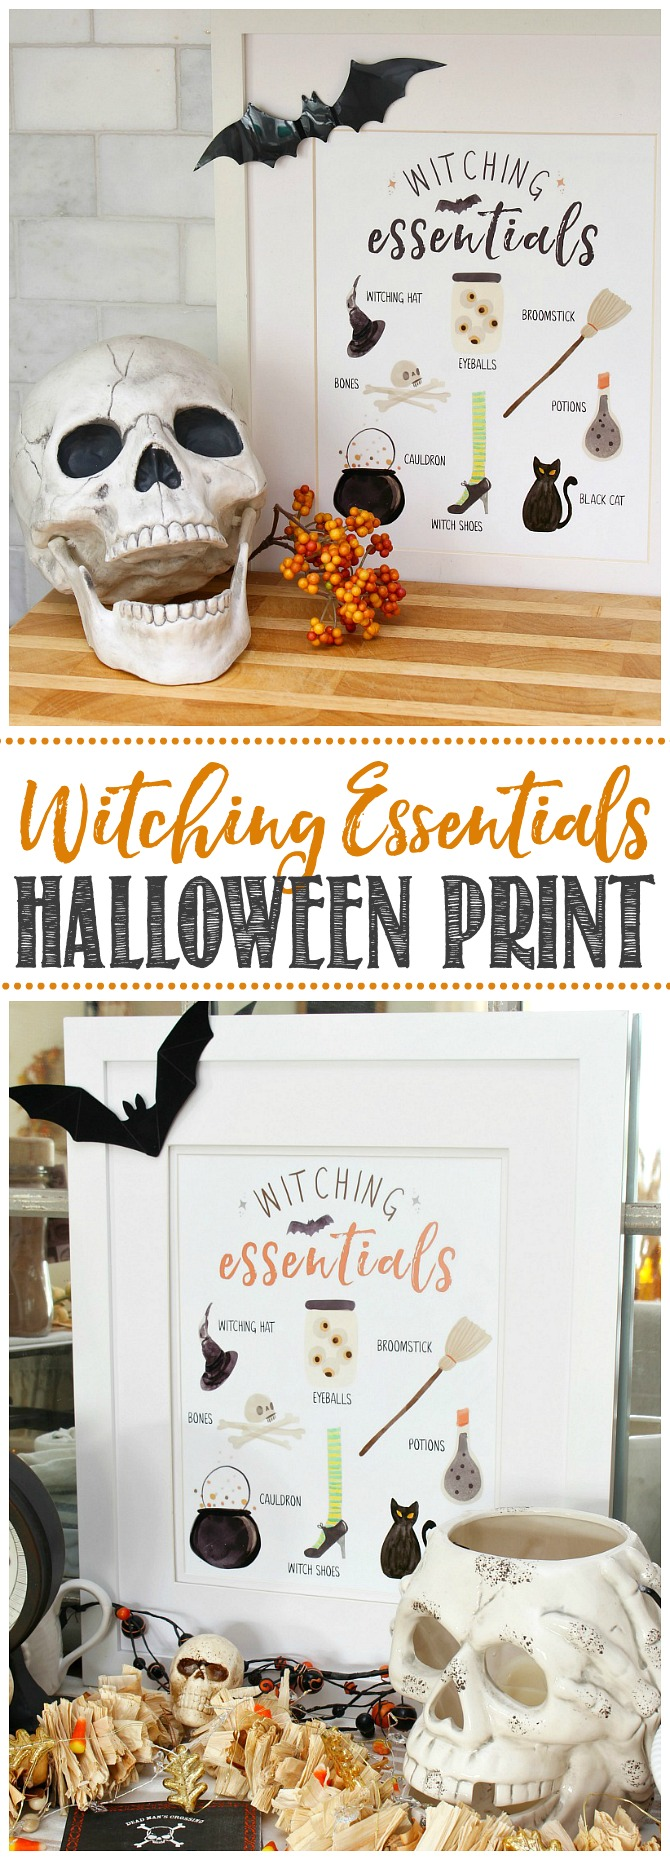 Witching Essentials Halloween printables in white frame with bat.